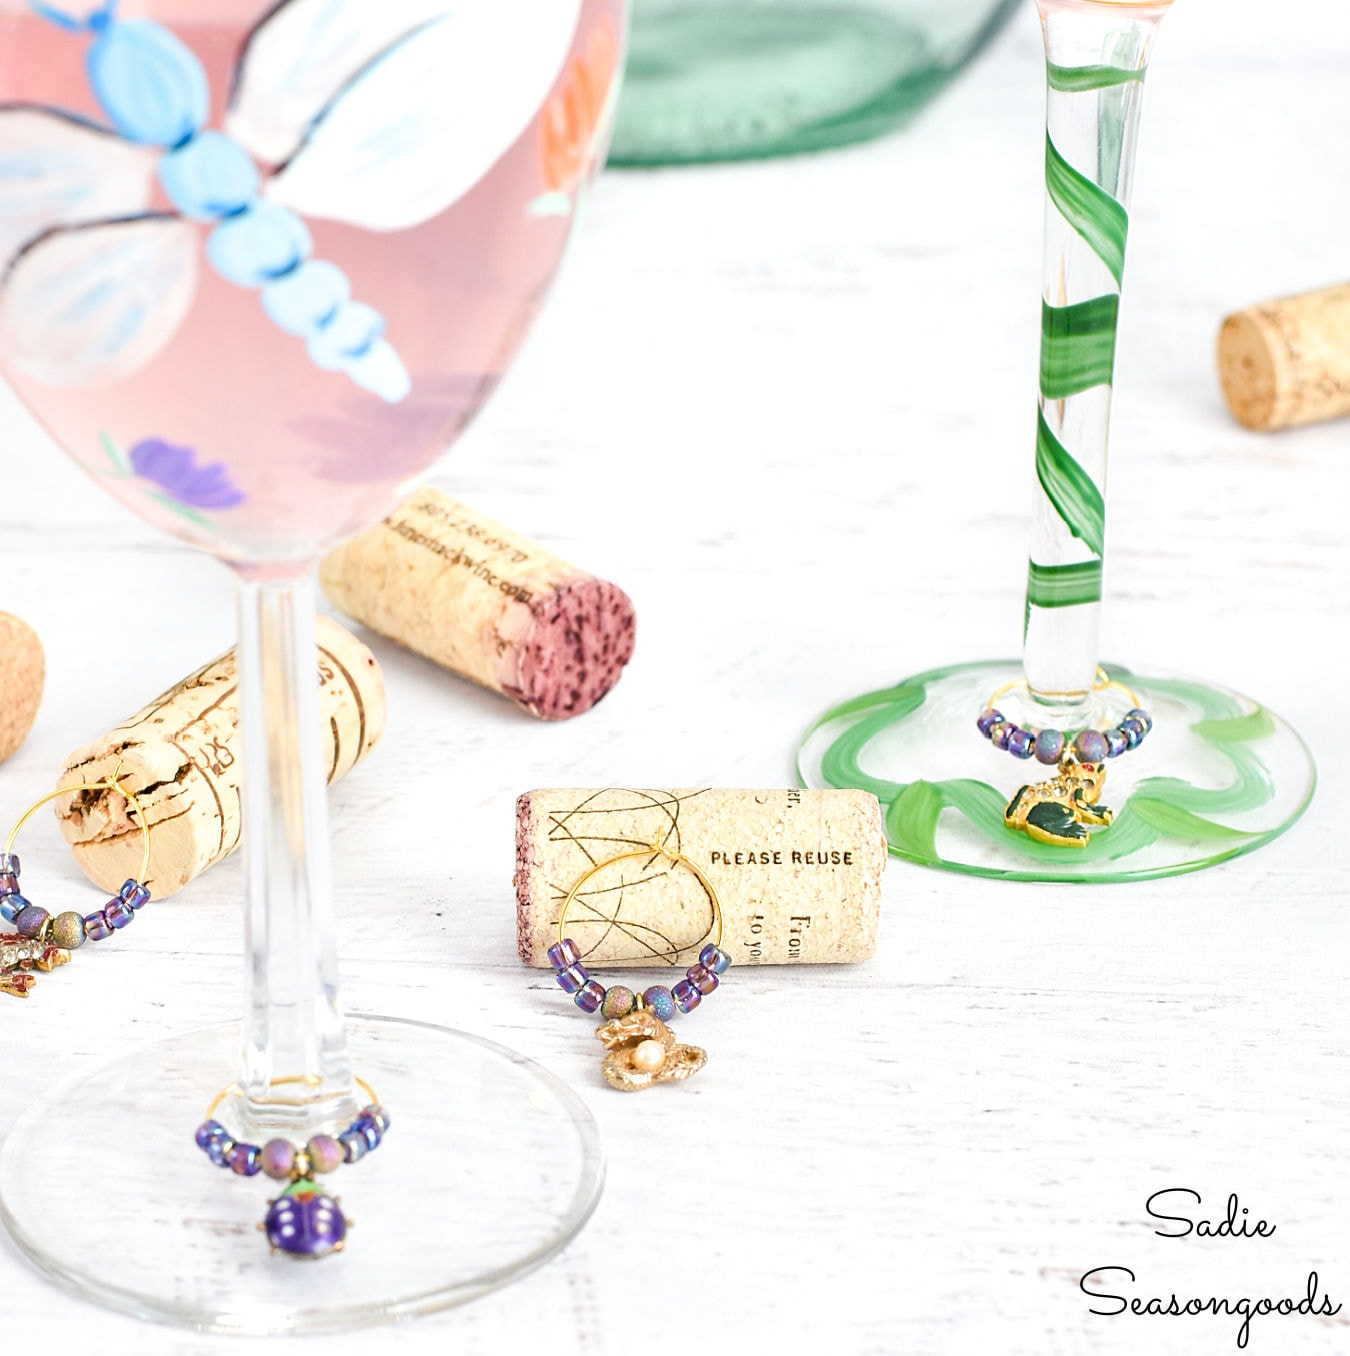 Upcycling Jewelry into Wine Glass Charms